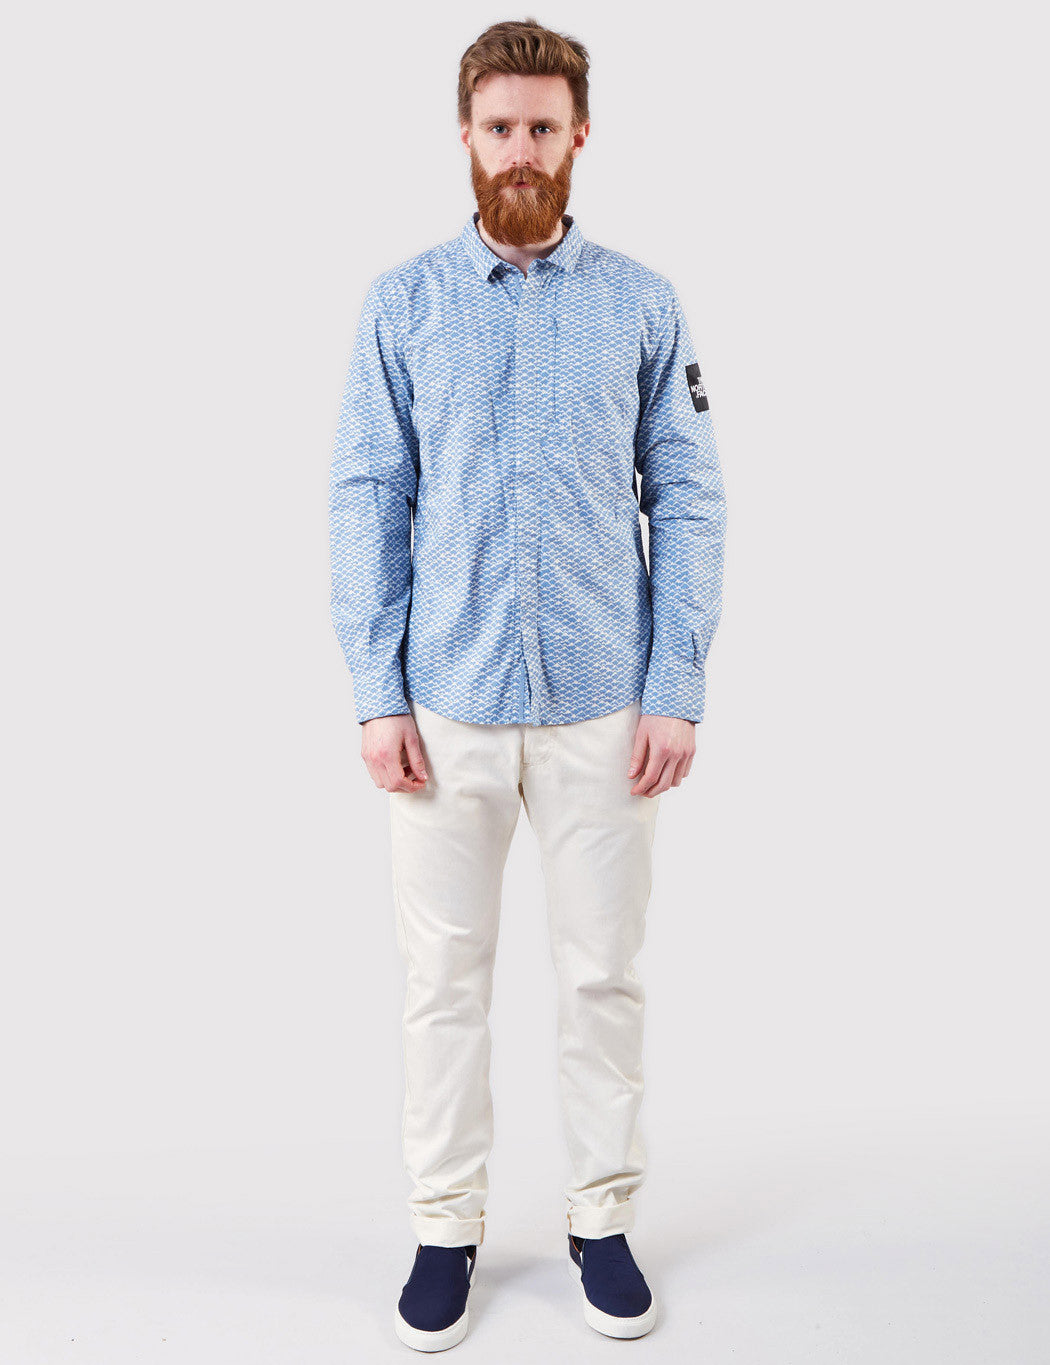 North Face Mountain Shirt - Faded Denim Blue